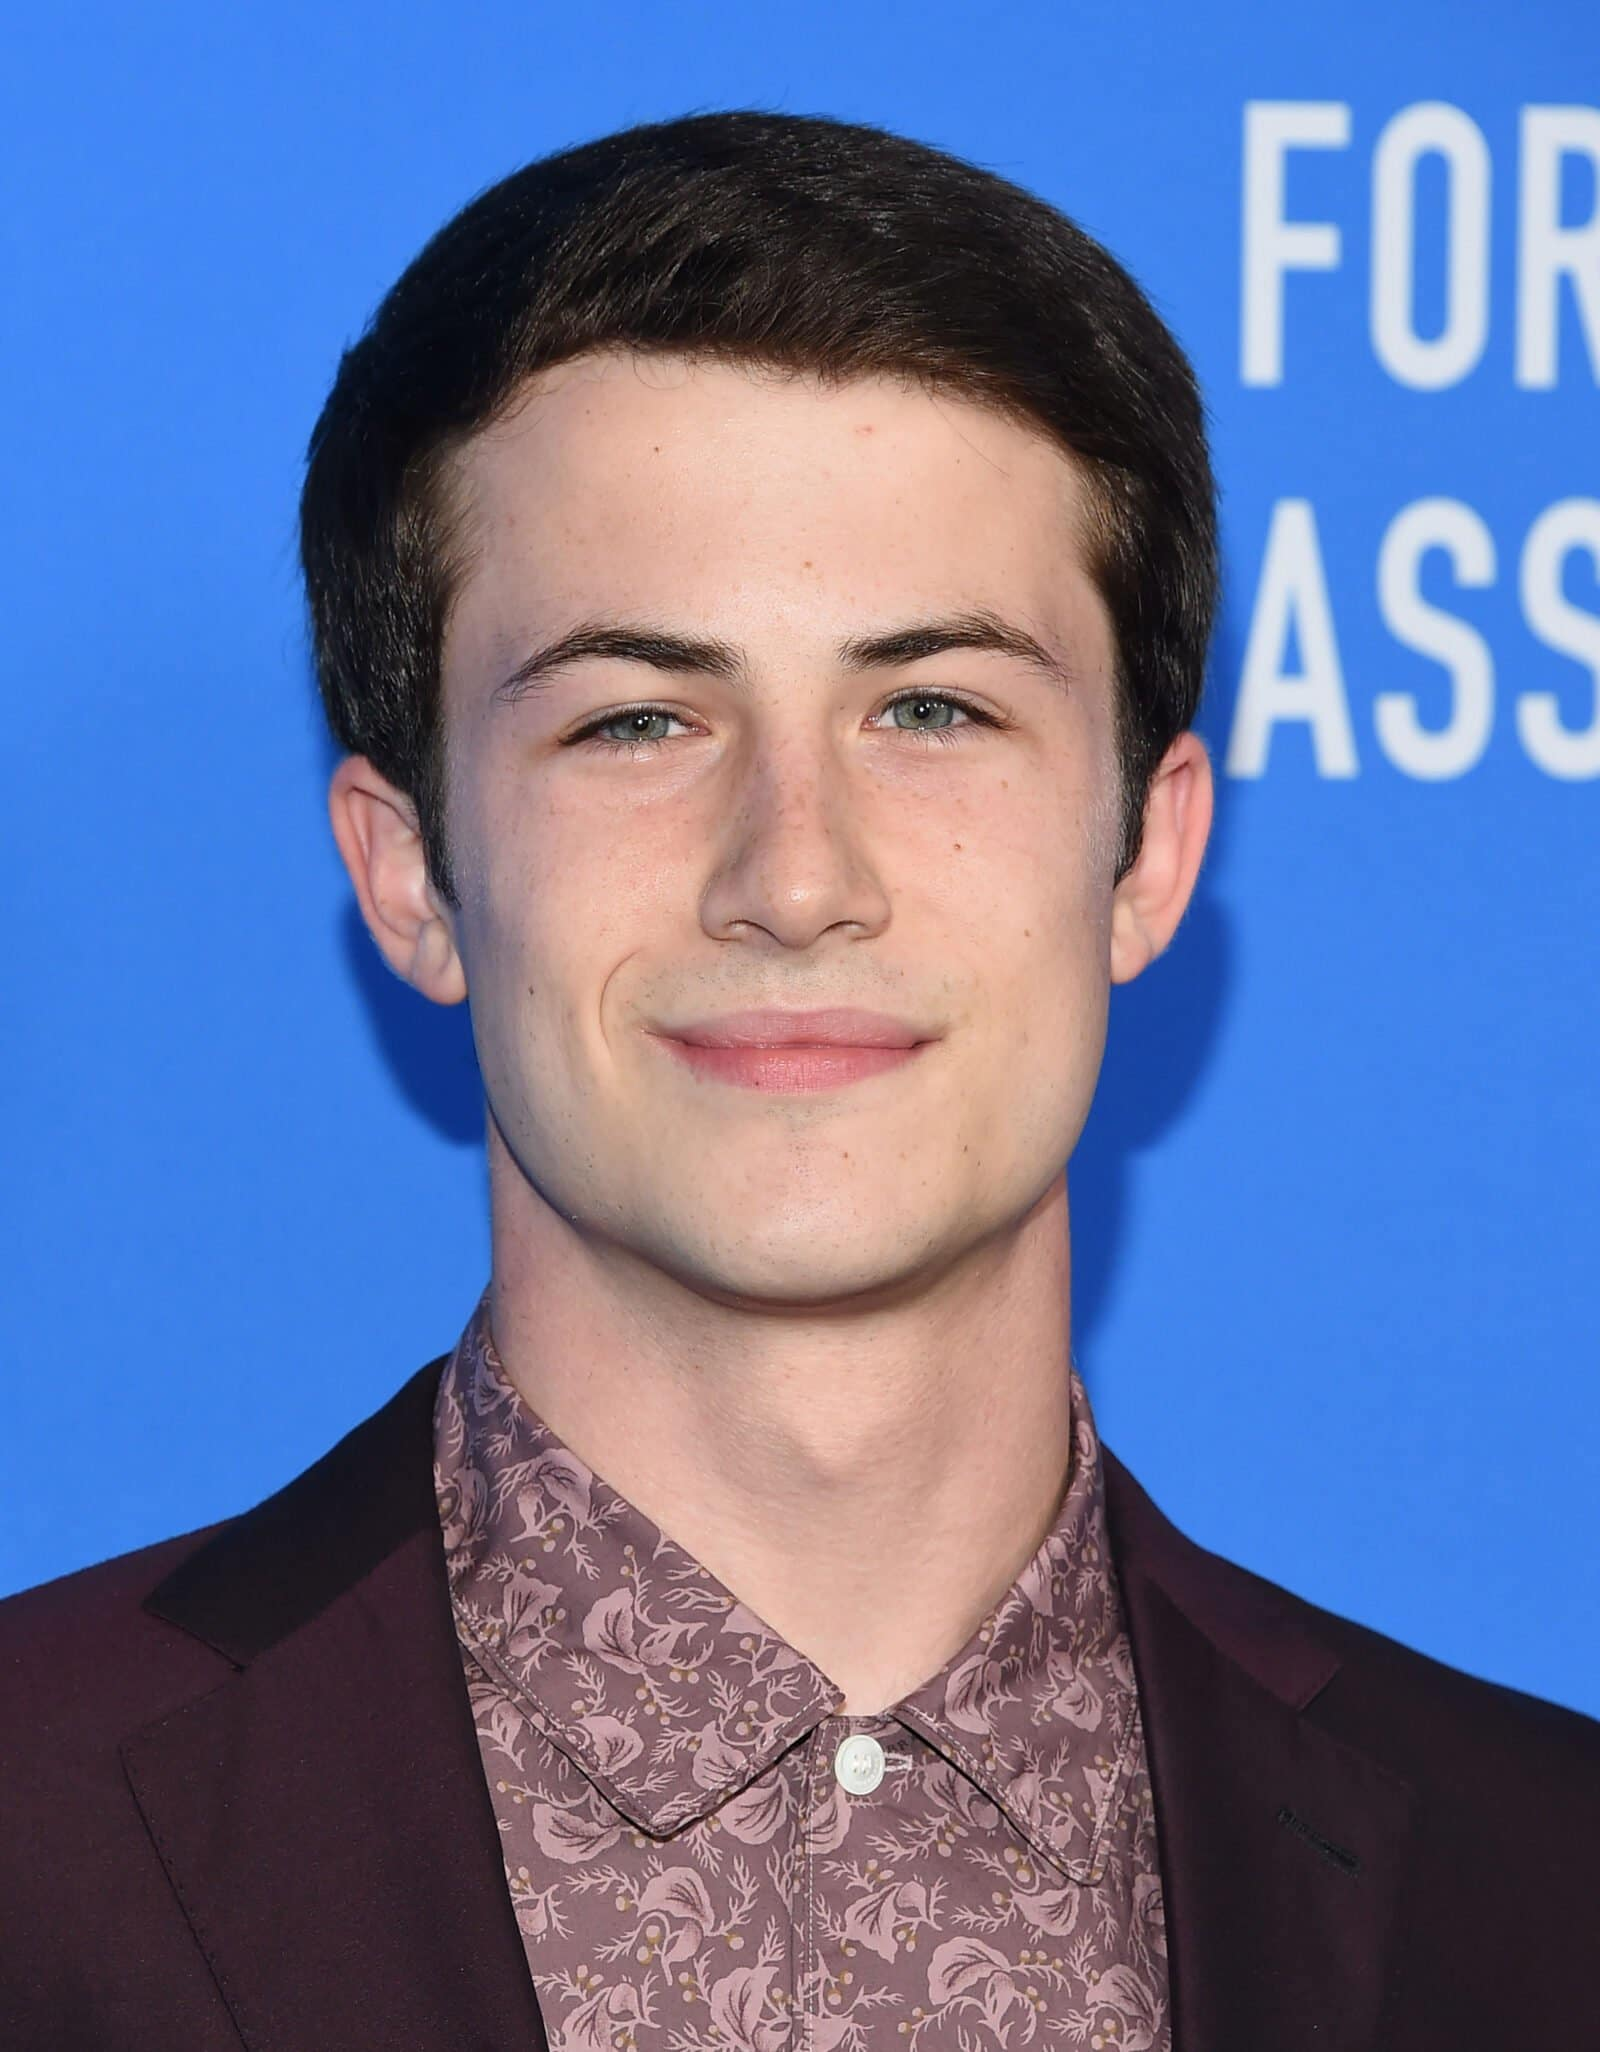 Who is Dylan Minnette?